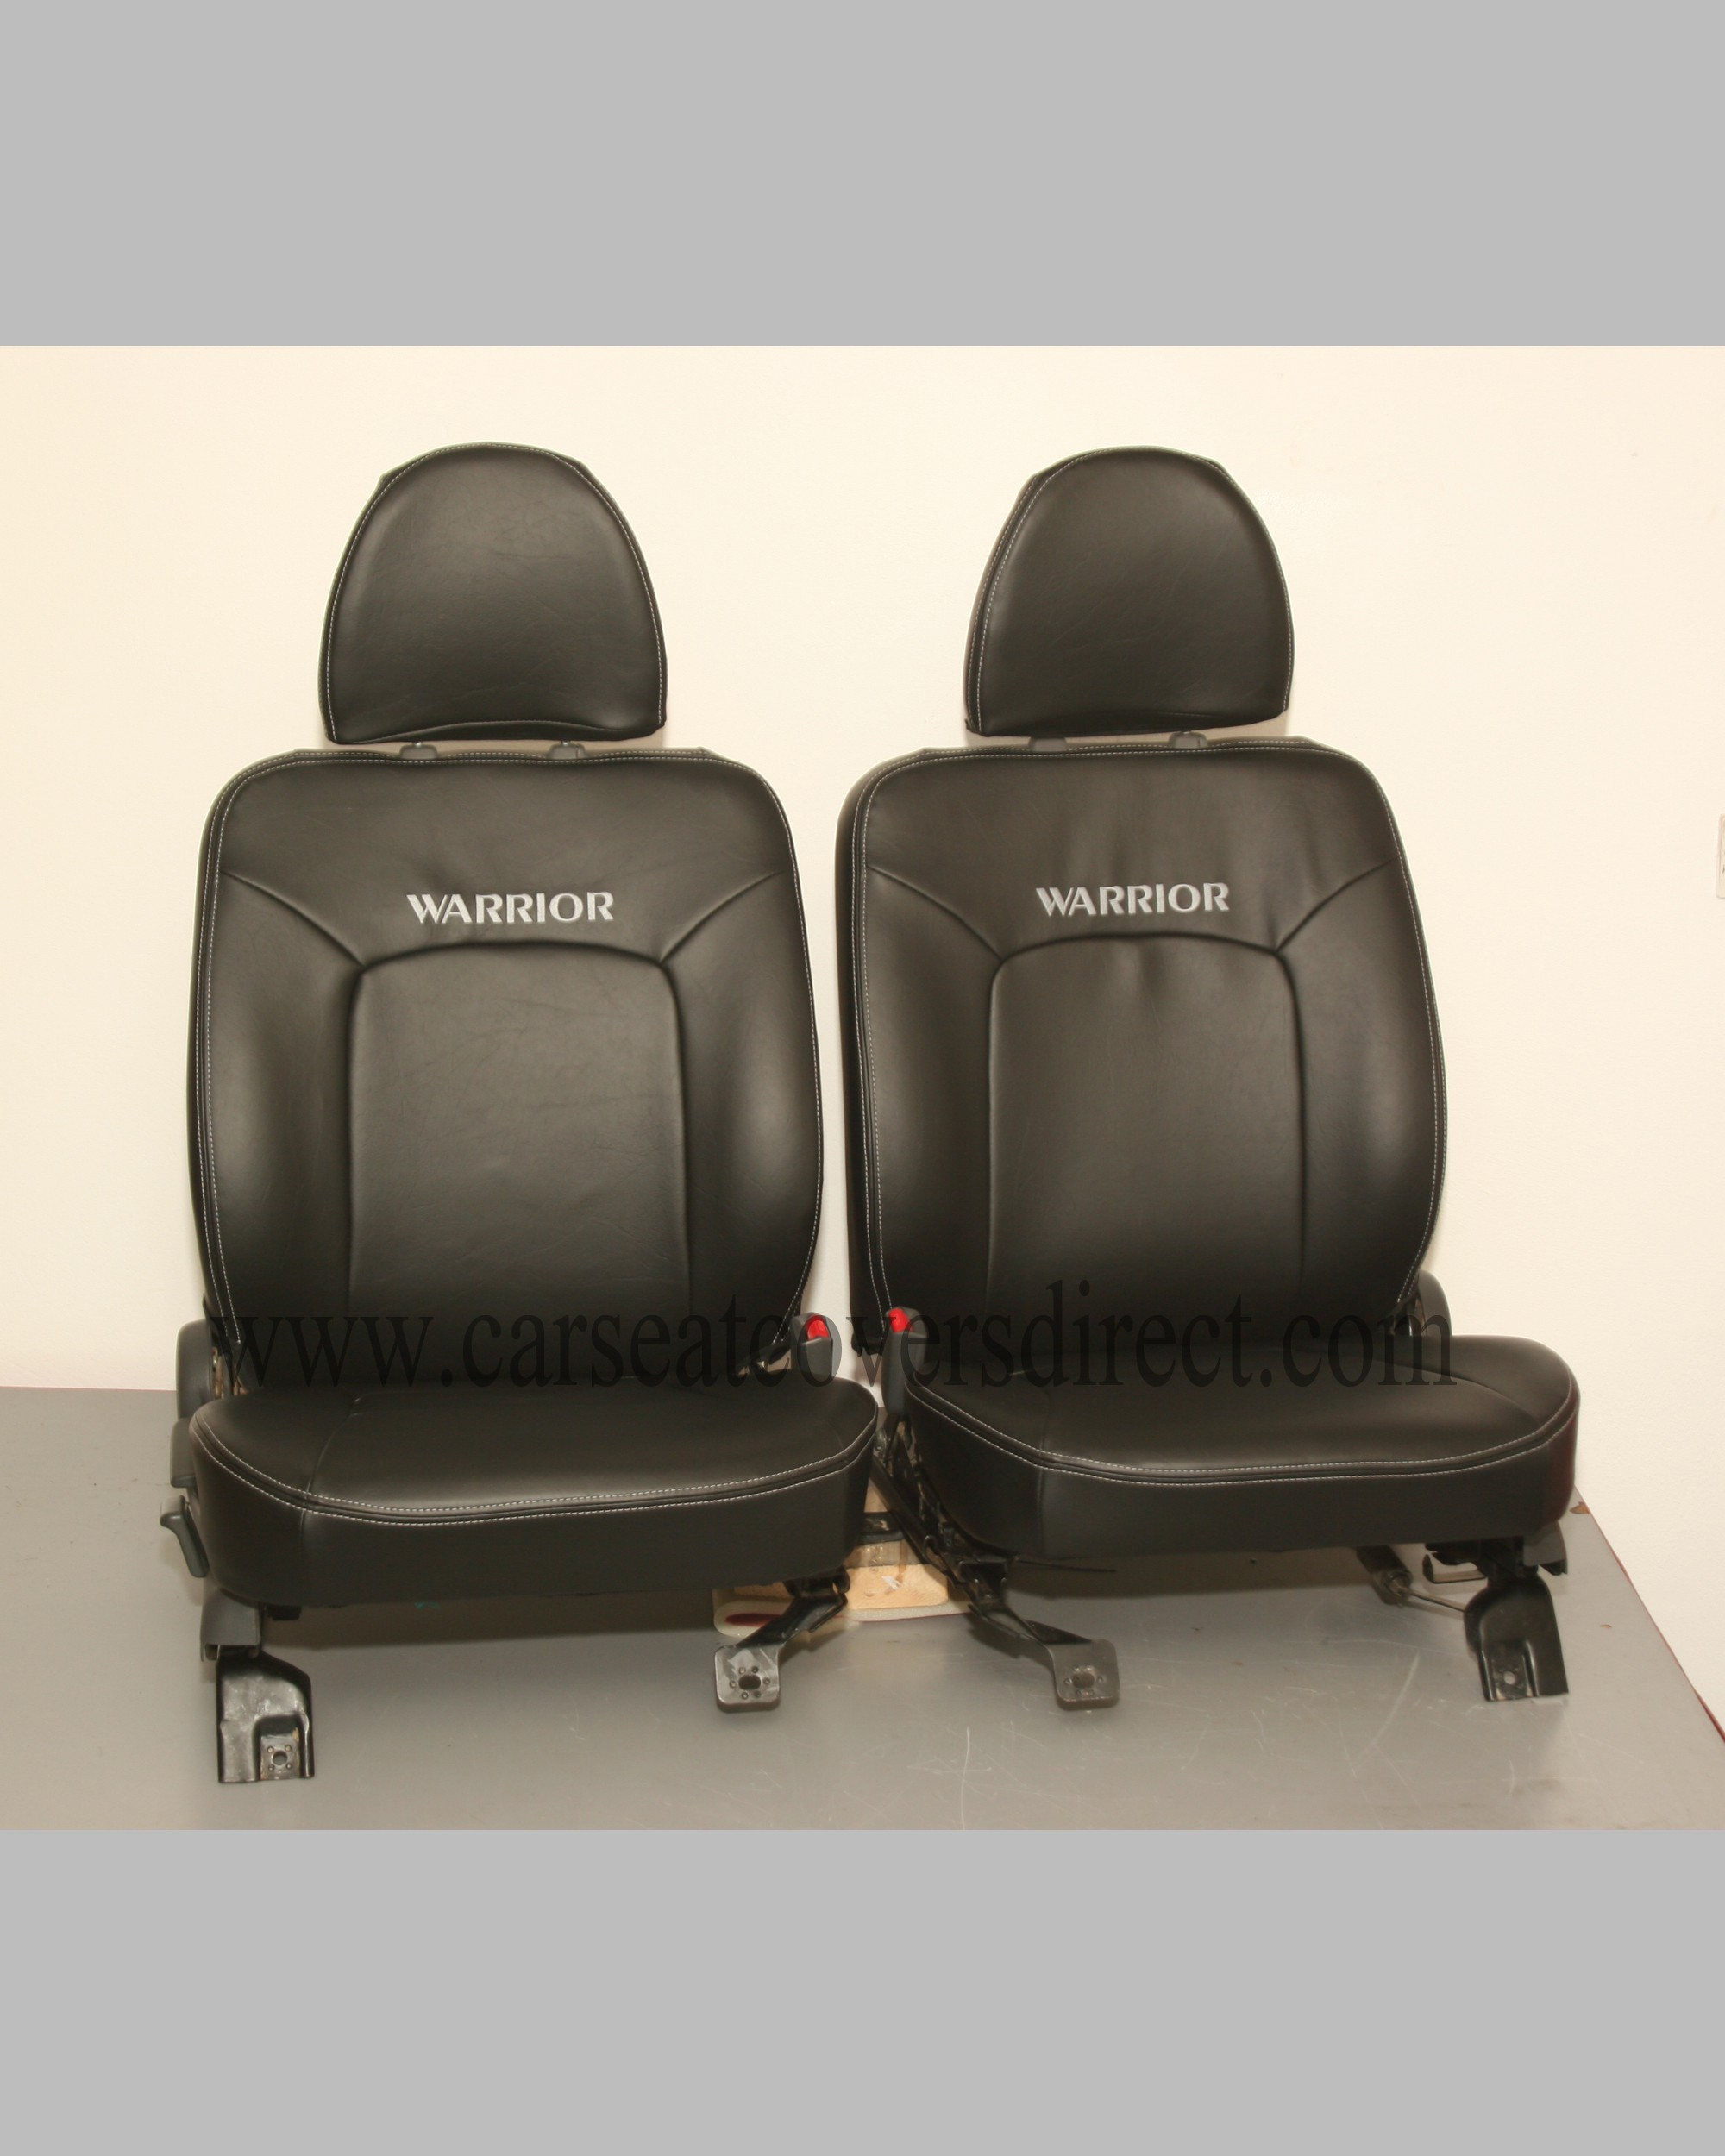 MITSUBISHI L200 Warrior Seat Covers Car Seat Covers Direct - Tailored To Your Choice